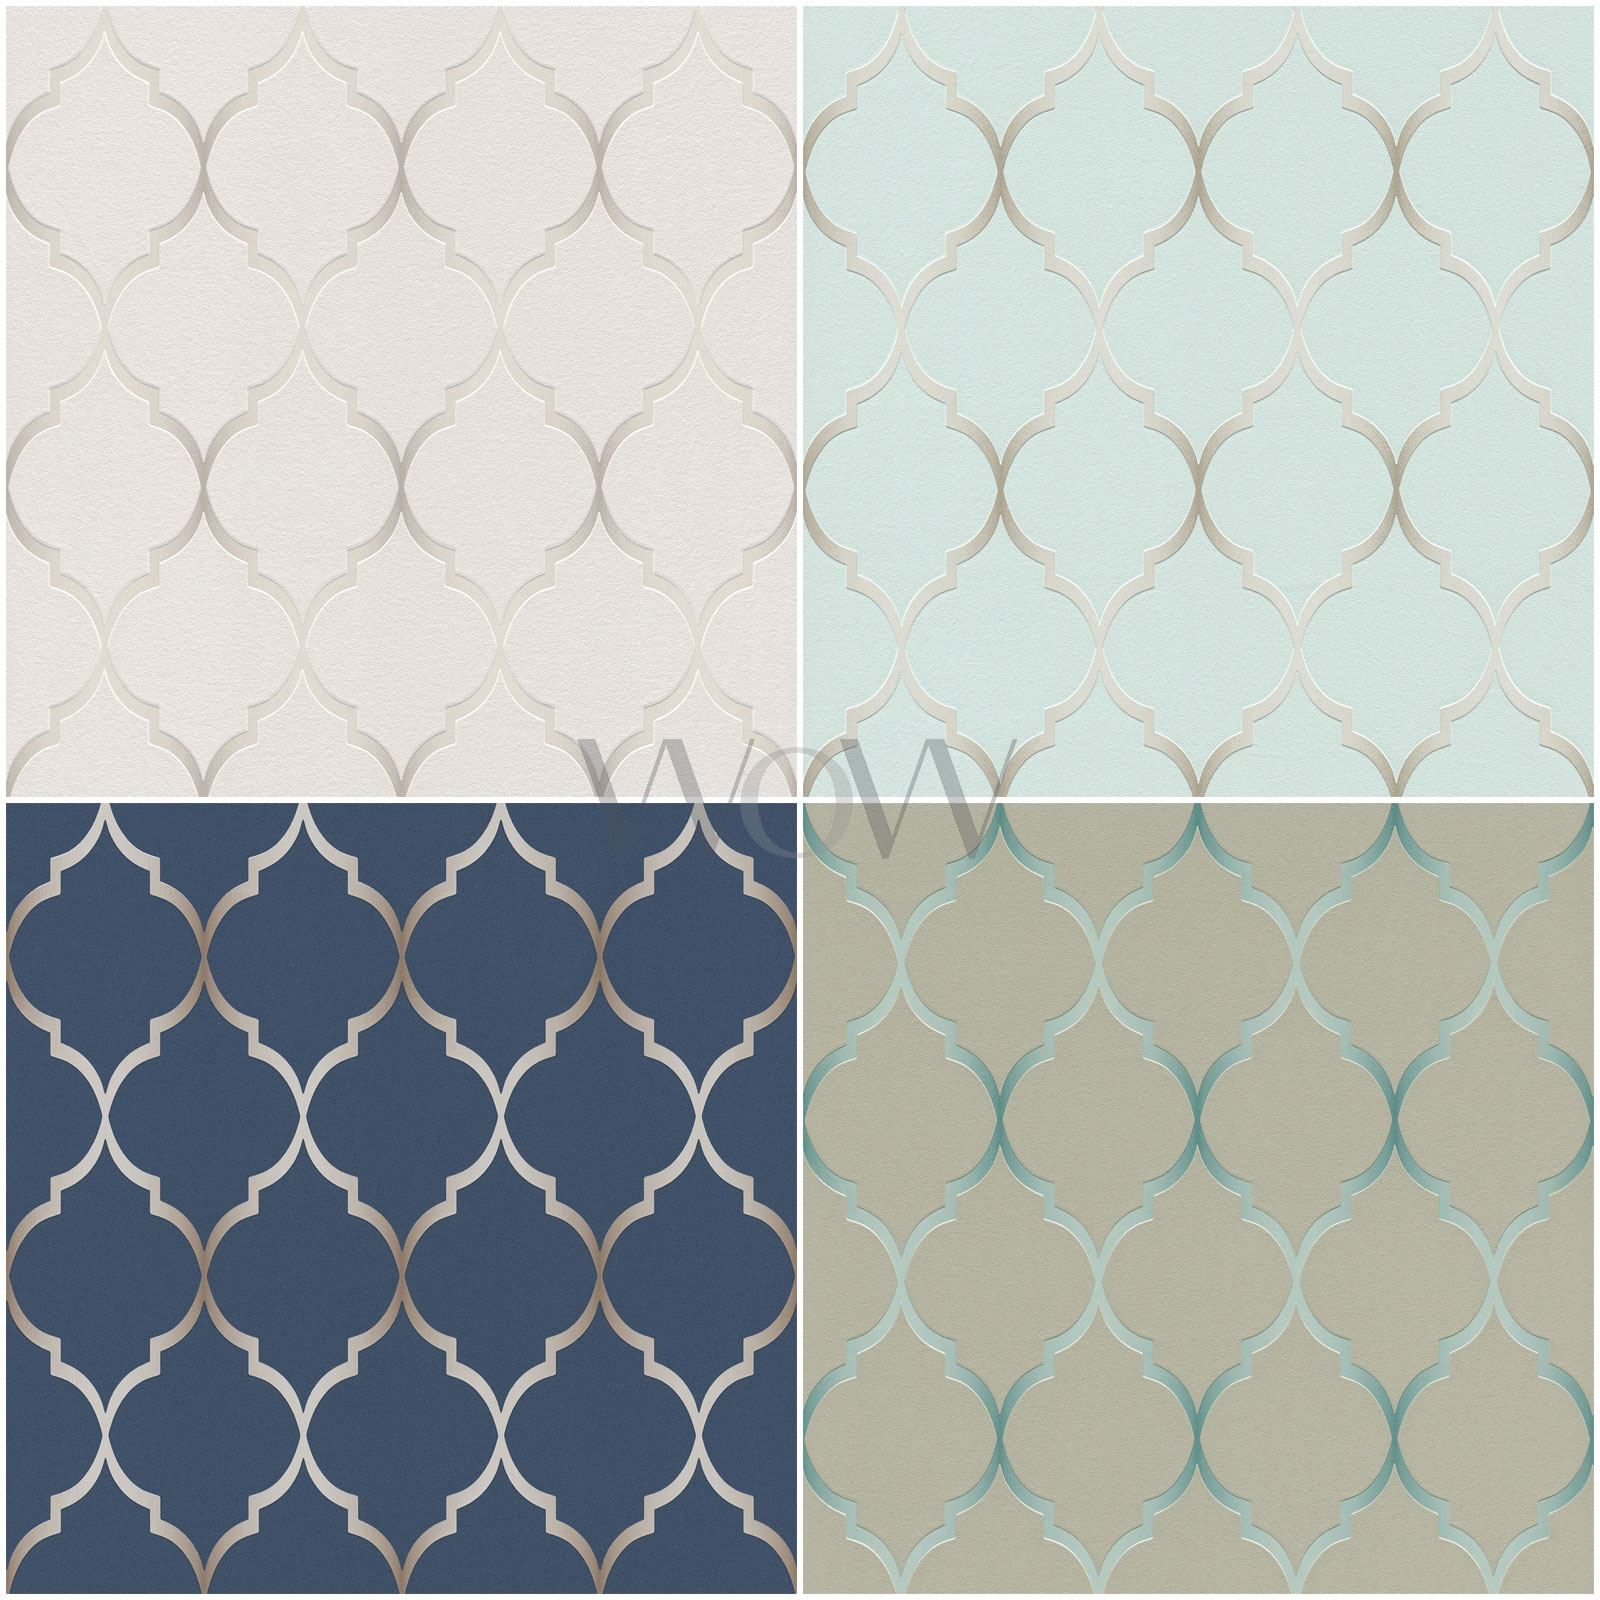 Rasch Fretwork Geometric Trellis Wallpaper Textured